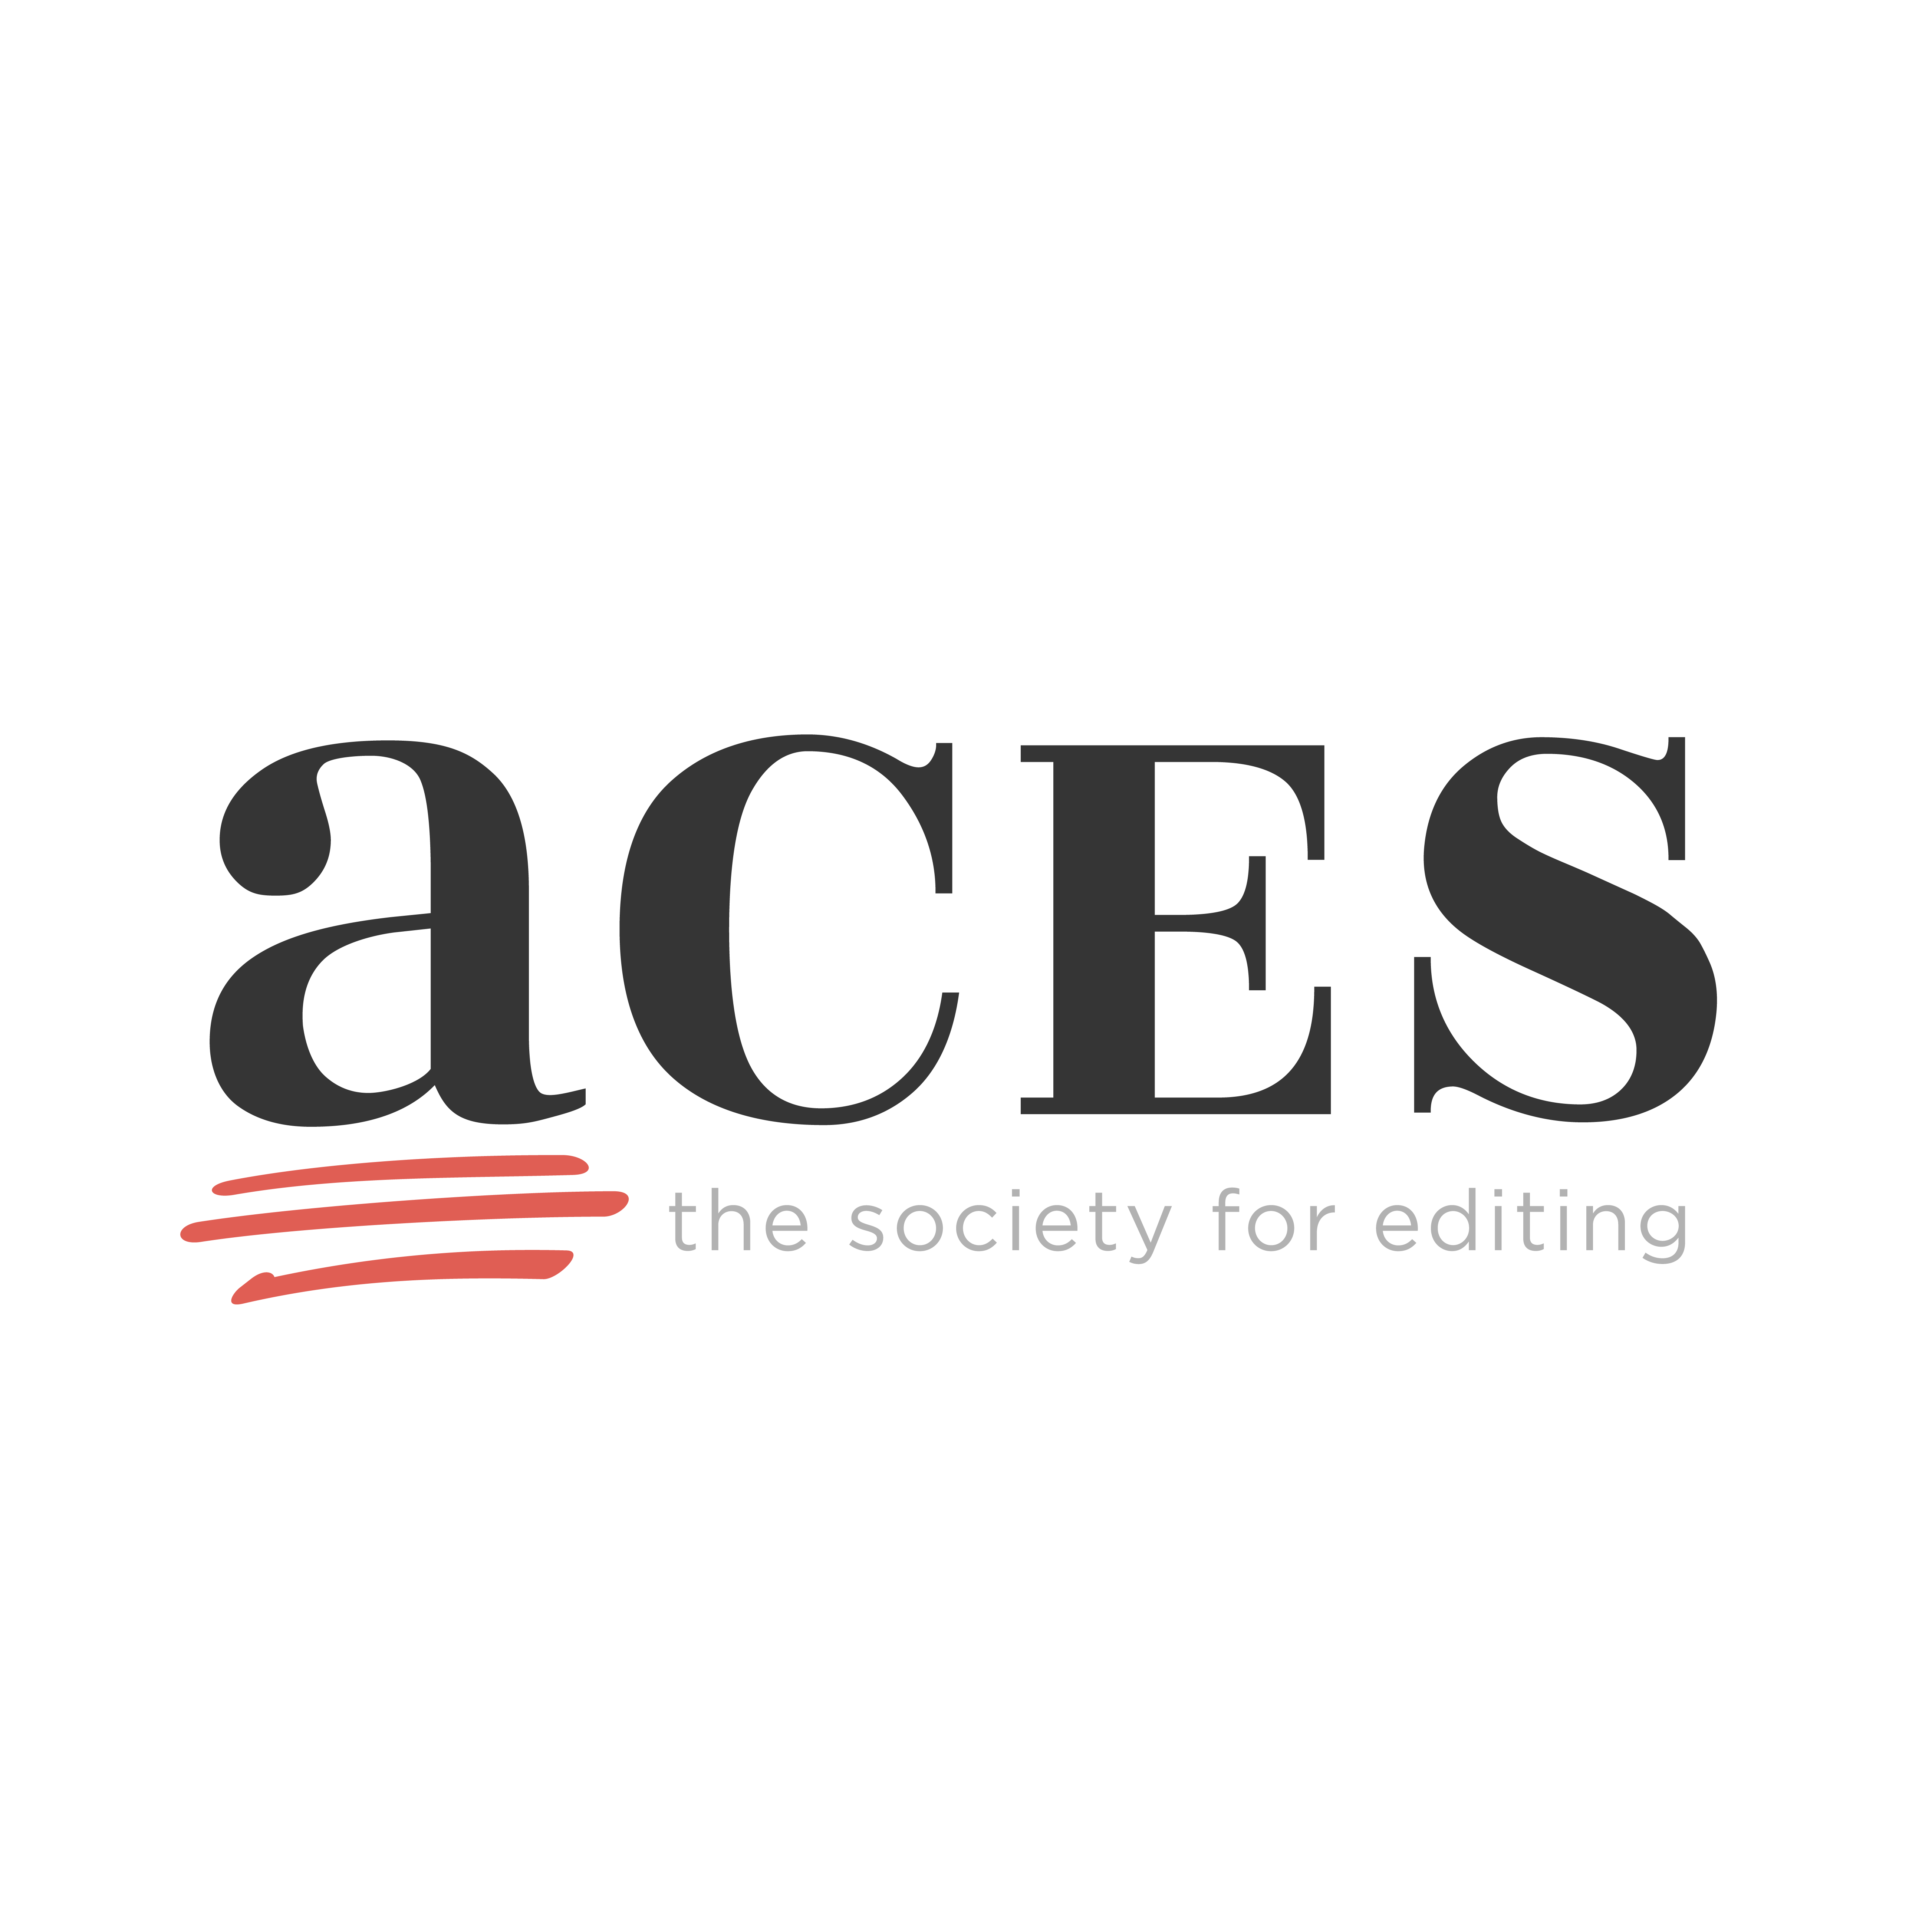 The logo of ACES - The Society of Editors